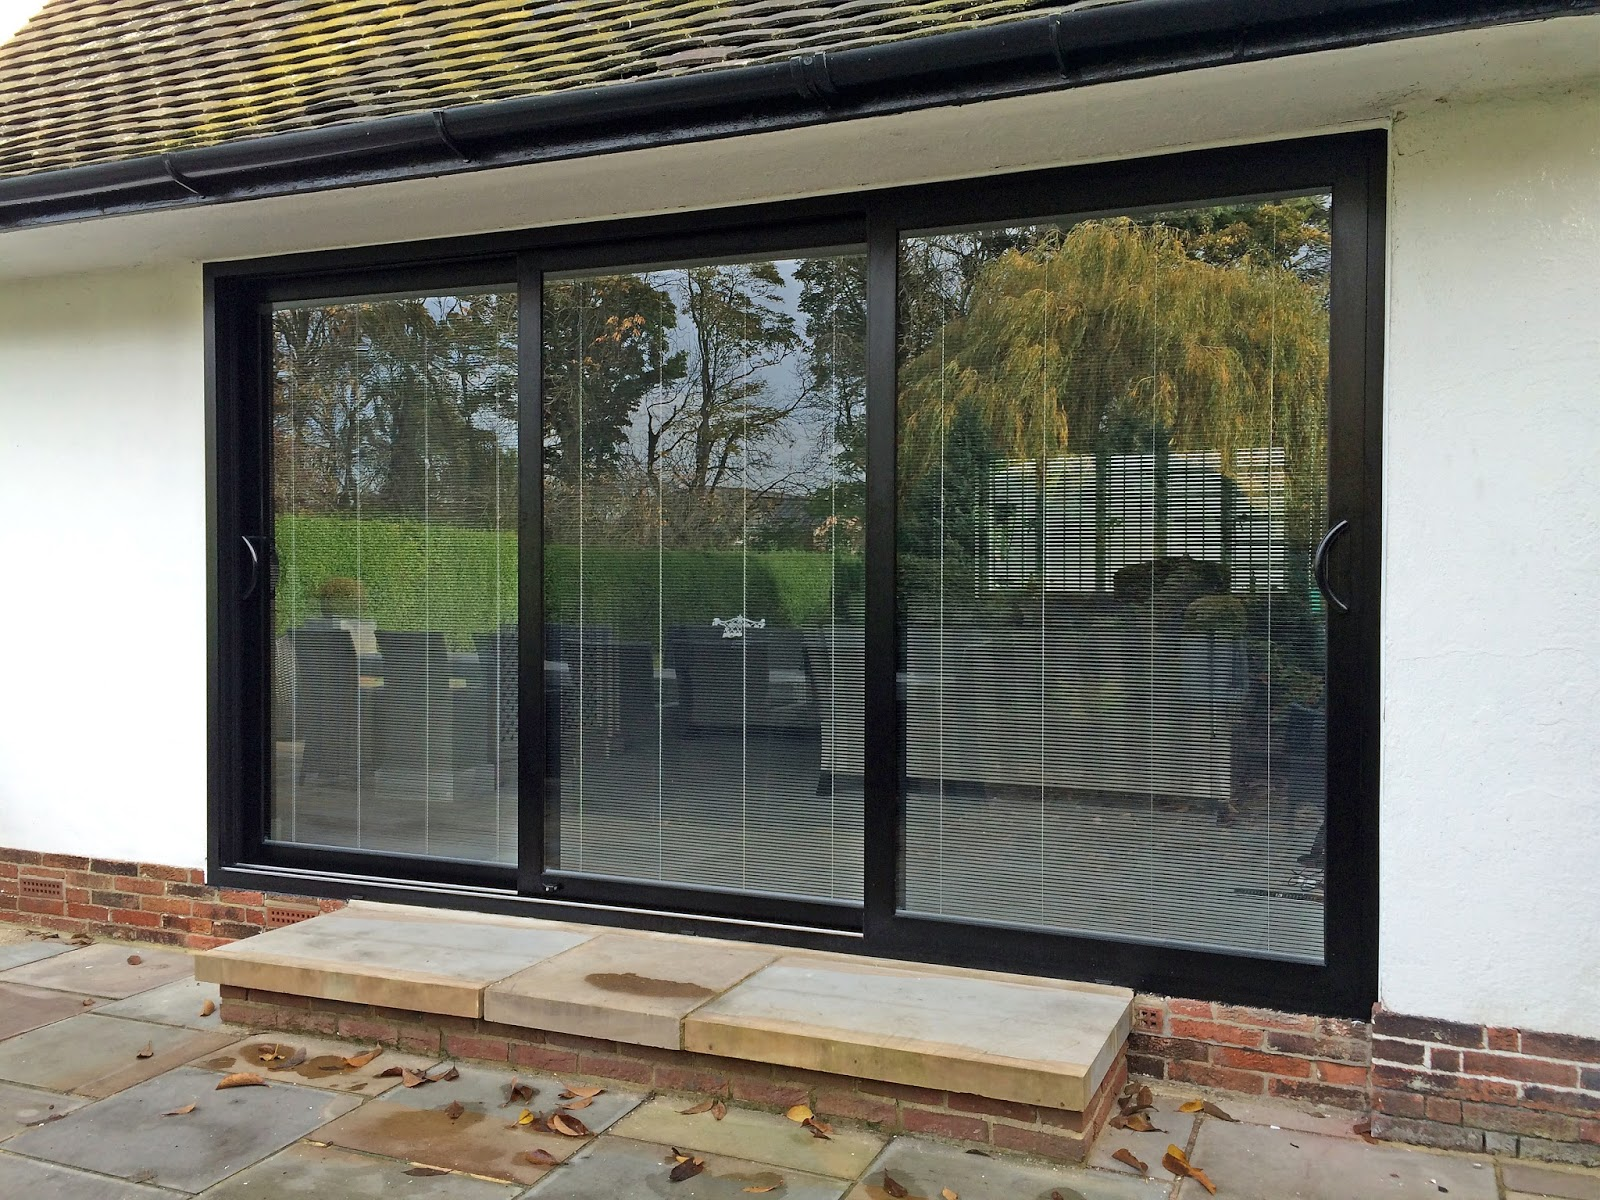 Marlin Windows: Smart Visoglide Plus sliding door